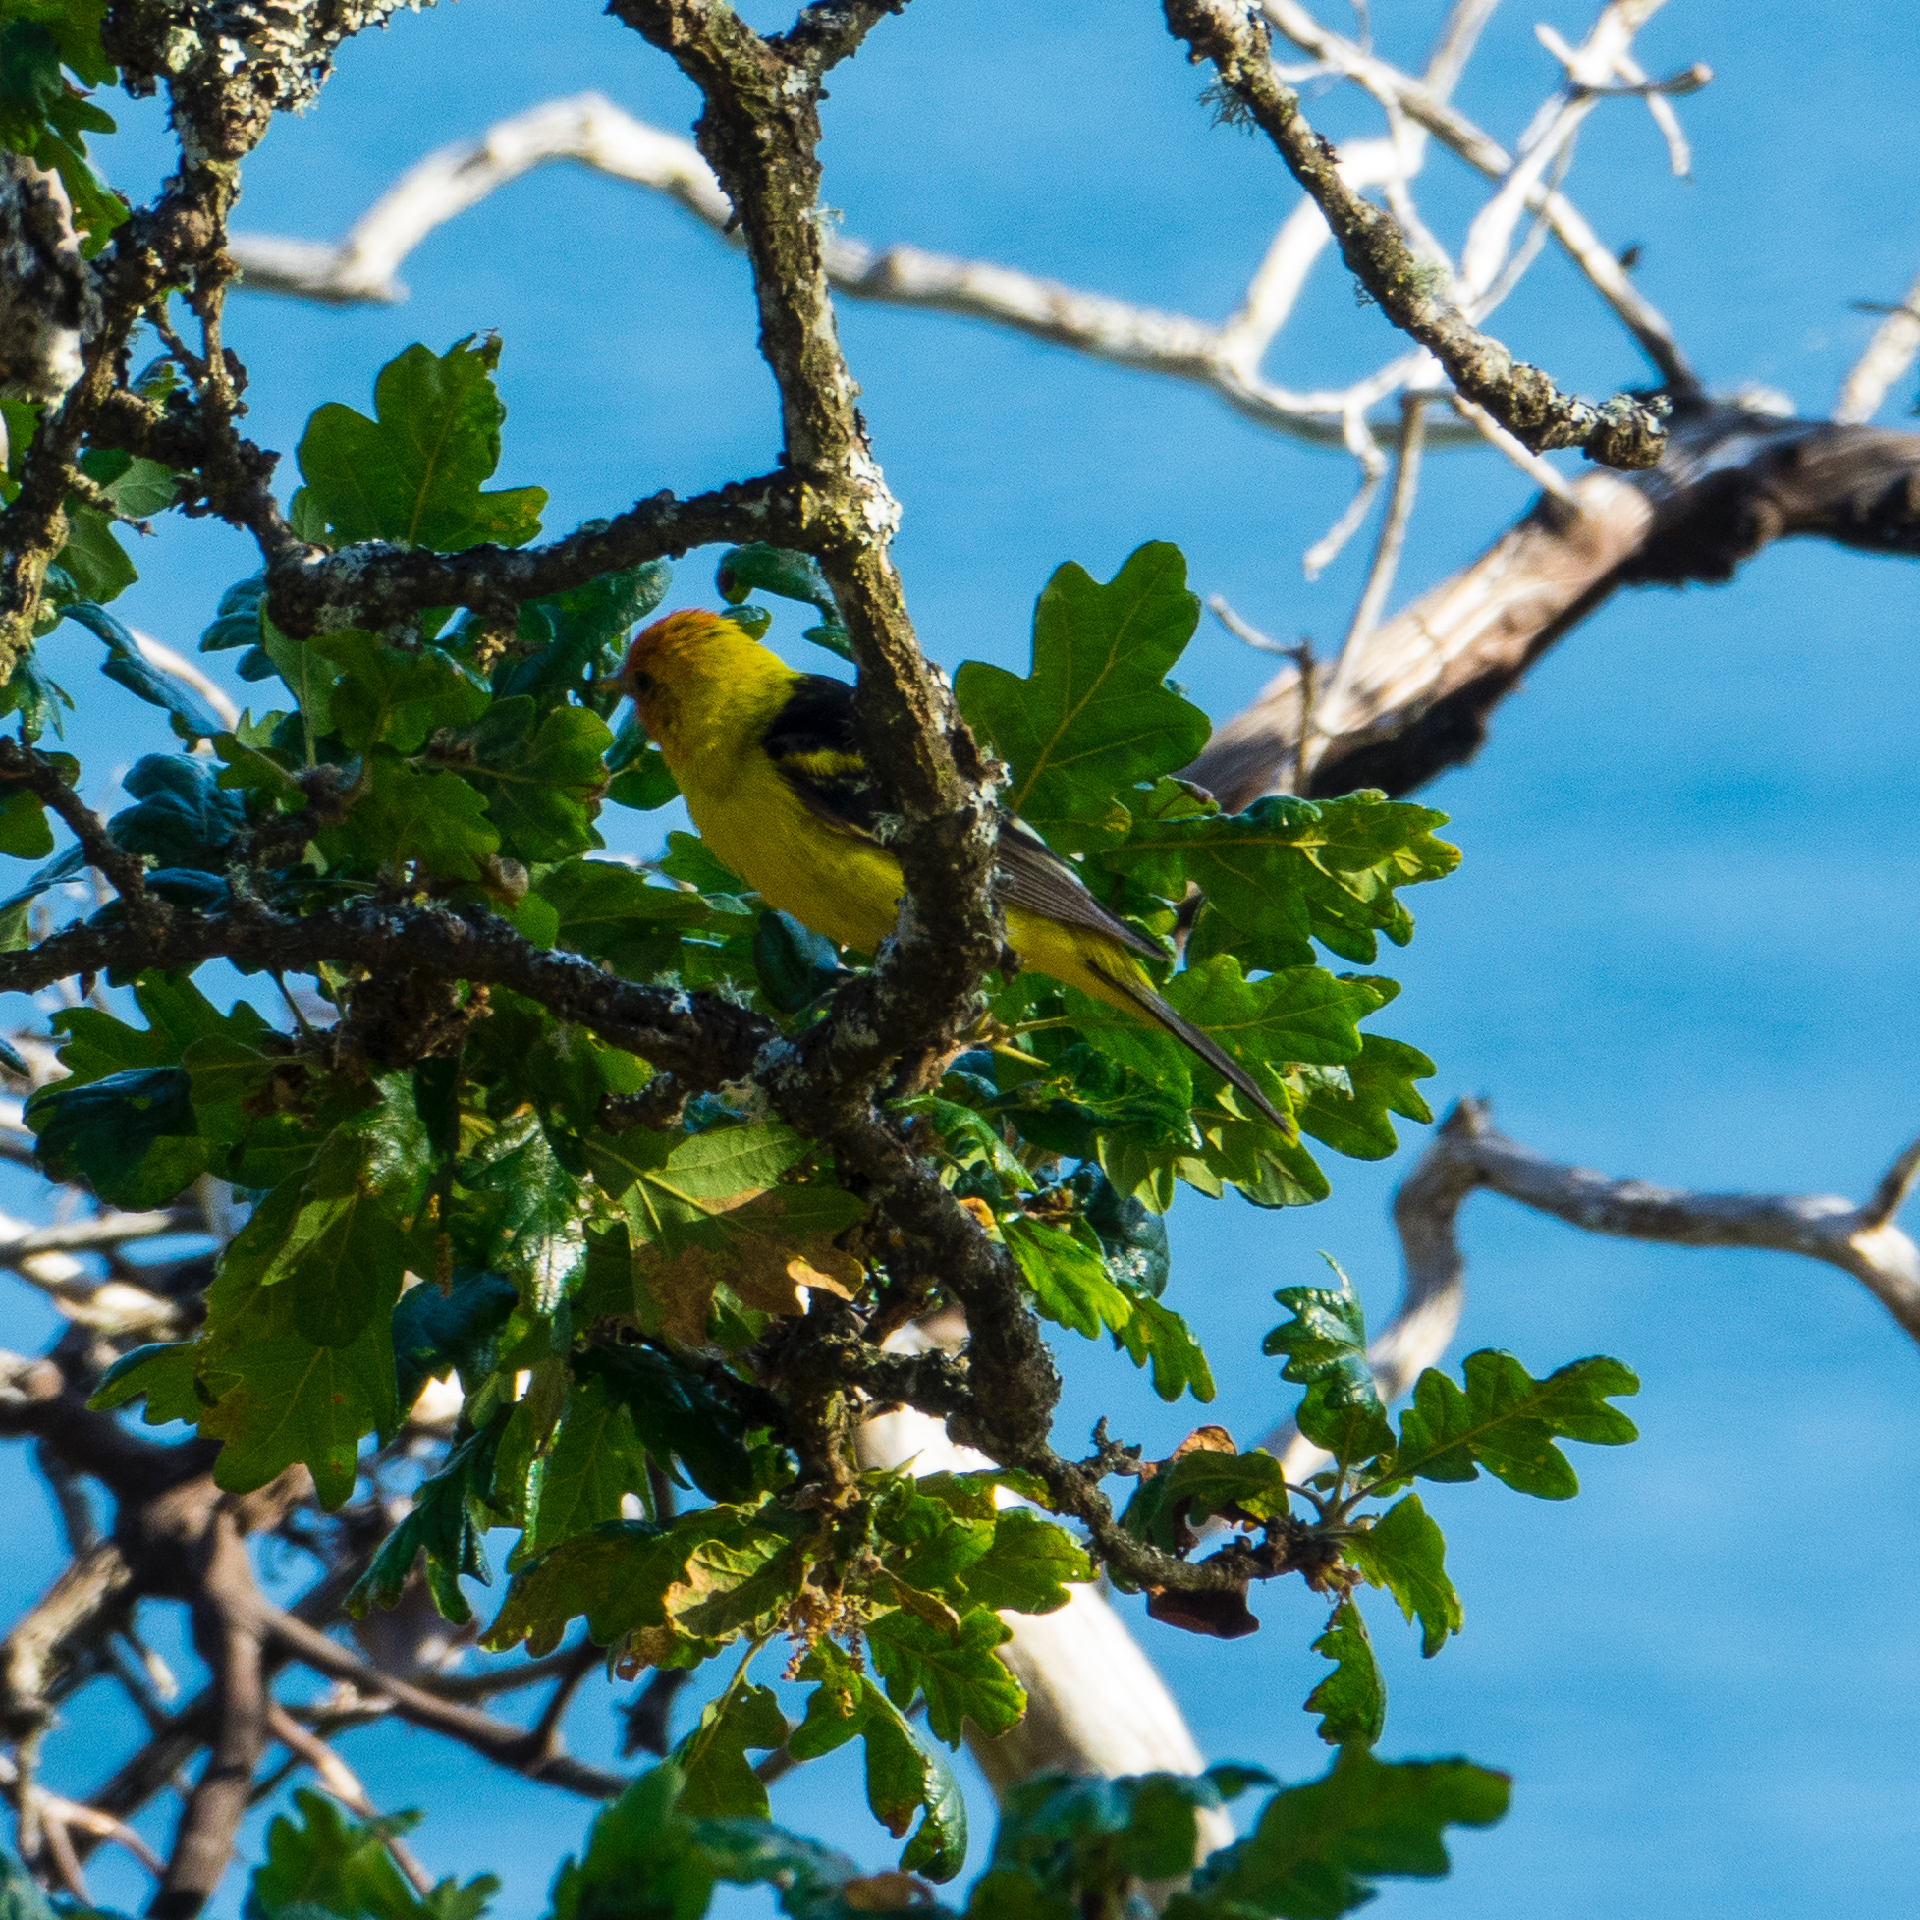 As we were sitting on the deck Friday evening, we saw a Western Tanager - another new species!